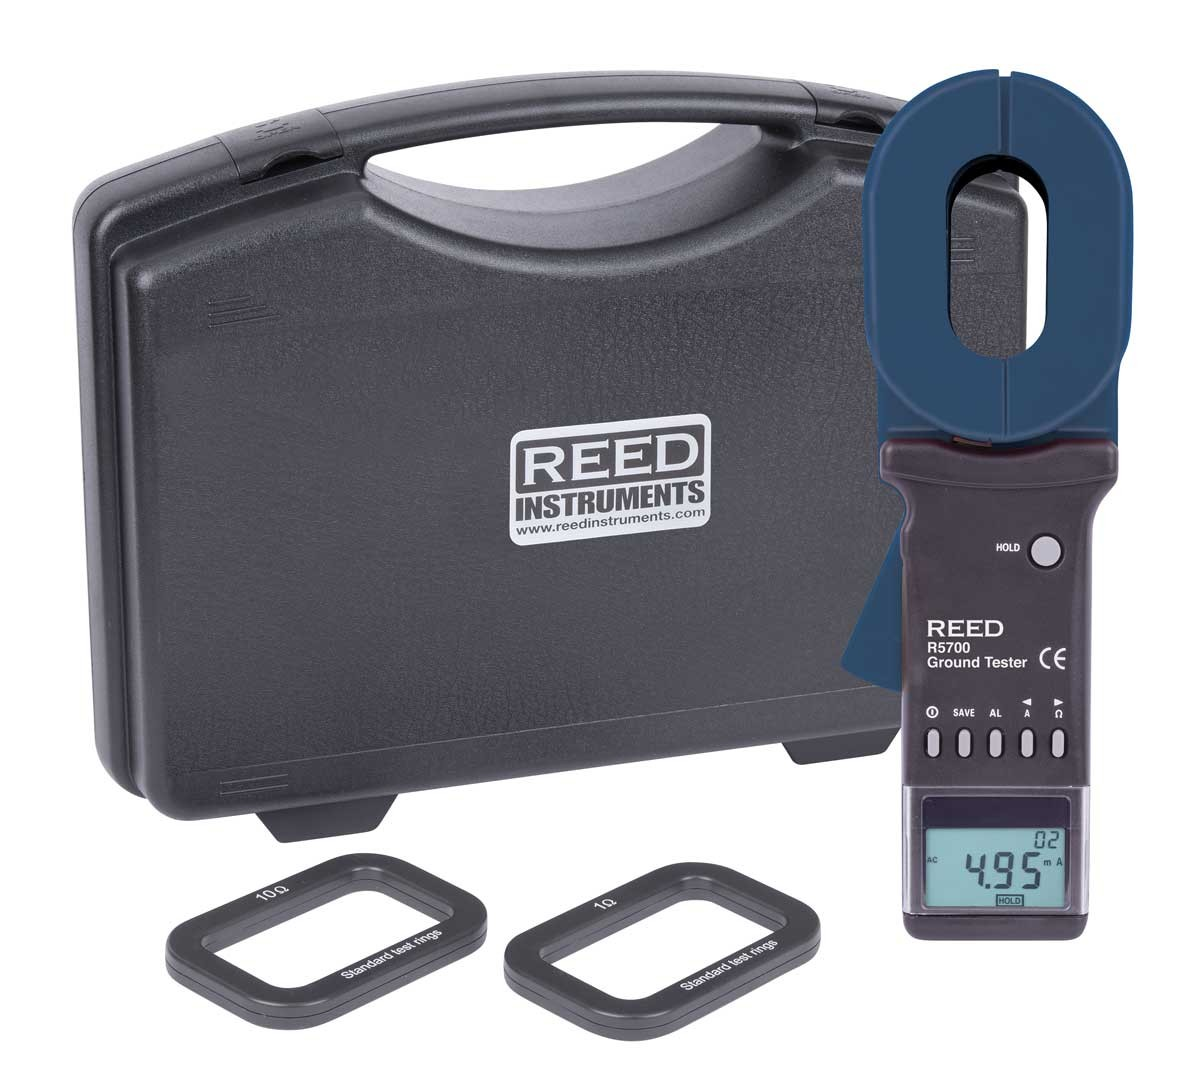 REED R5700 Clamp-On Ground Resistance Tester-Included